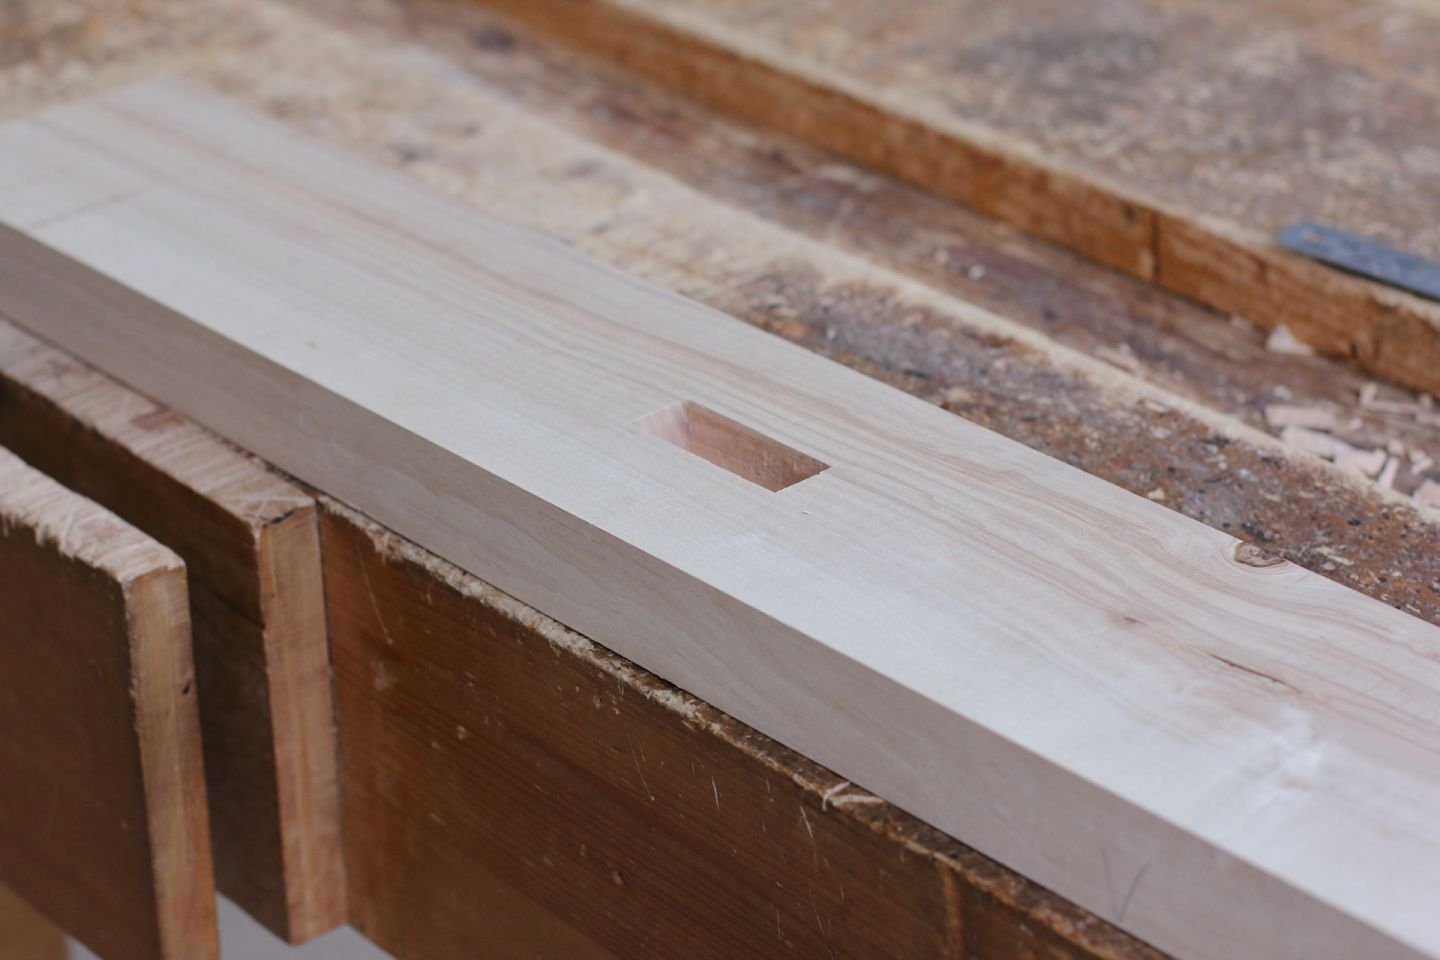 Conference table Milieudefensie - Cutting a mortise @ Atelier Espenaer